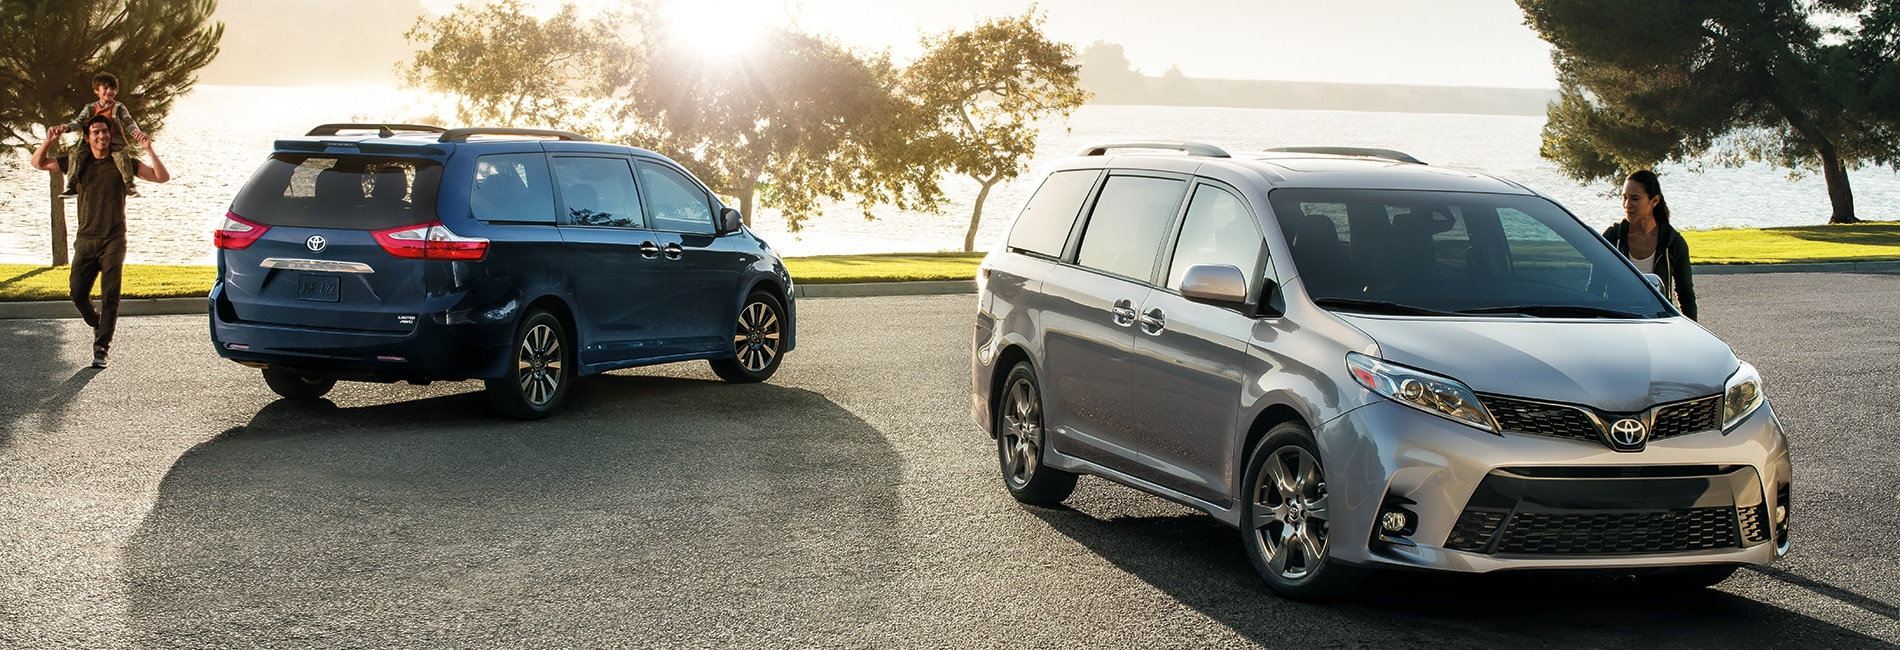 Toyota Sienna Exterior Vehicle Features